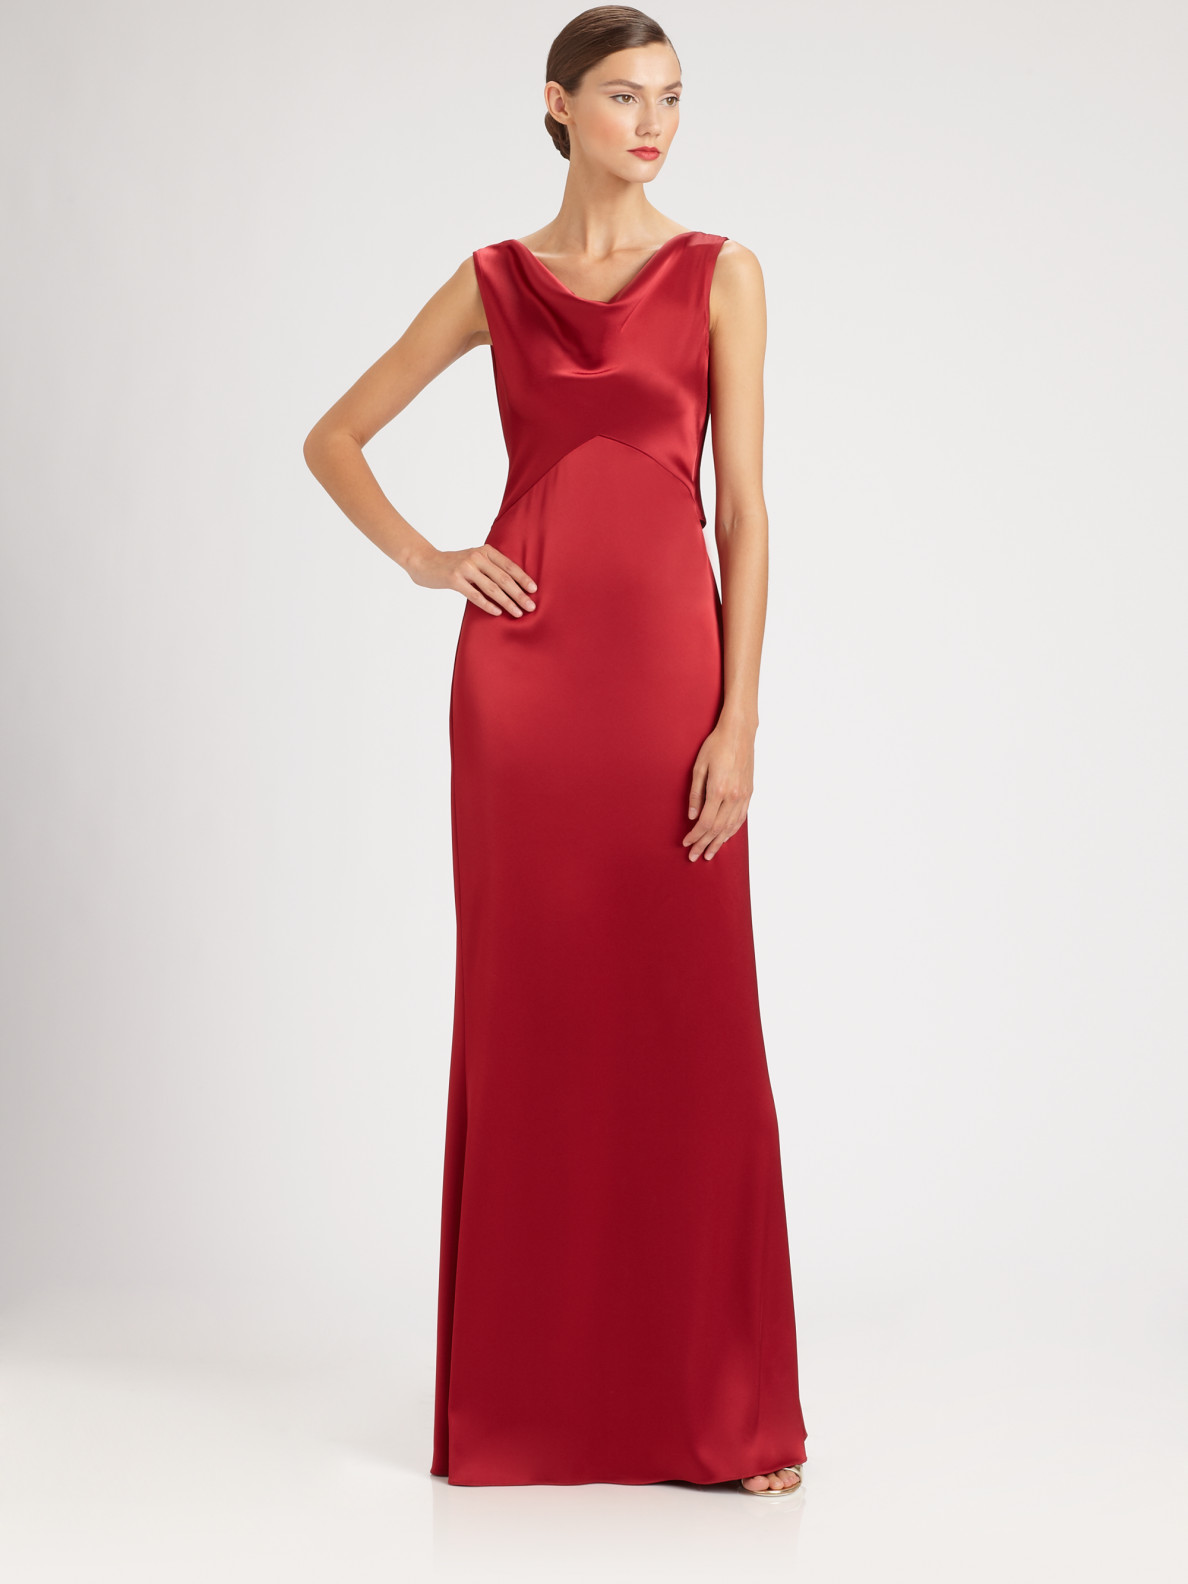 St. john Liquid Satin Gown in Red